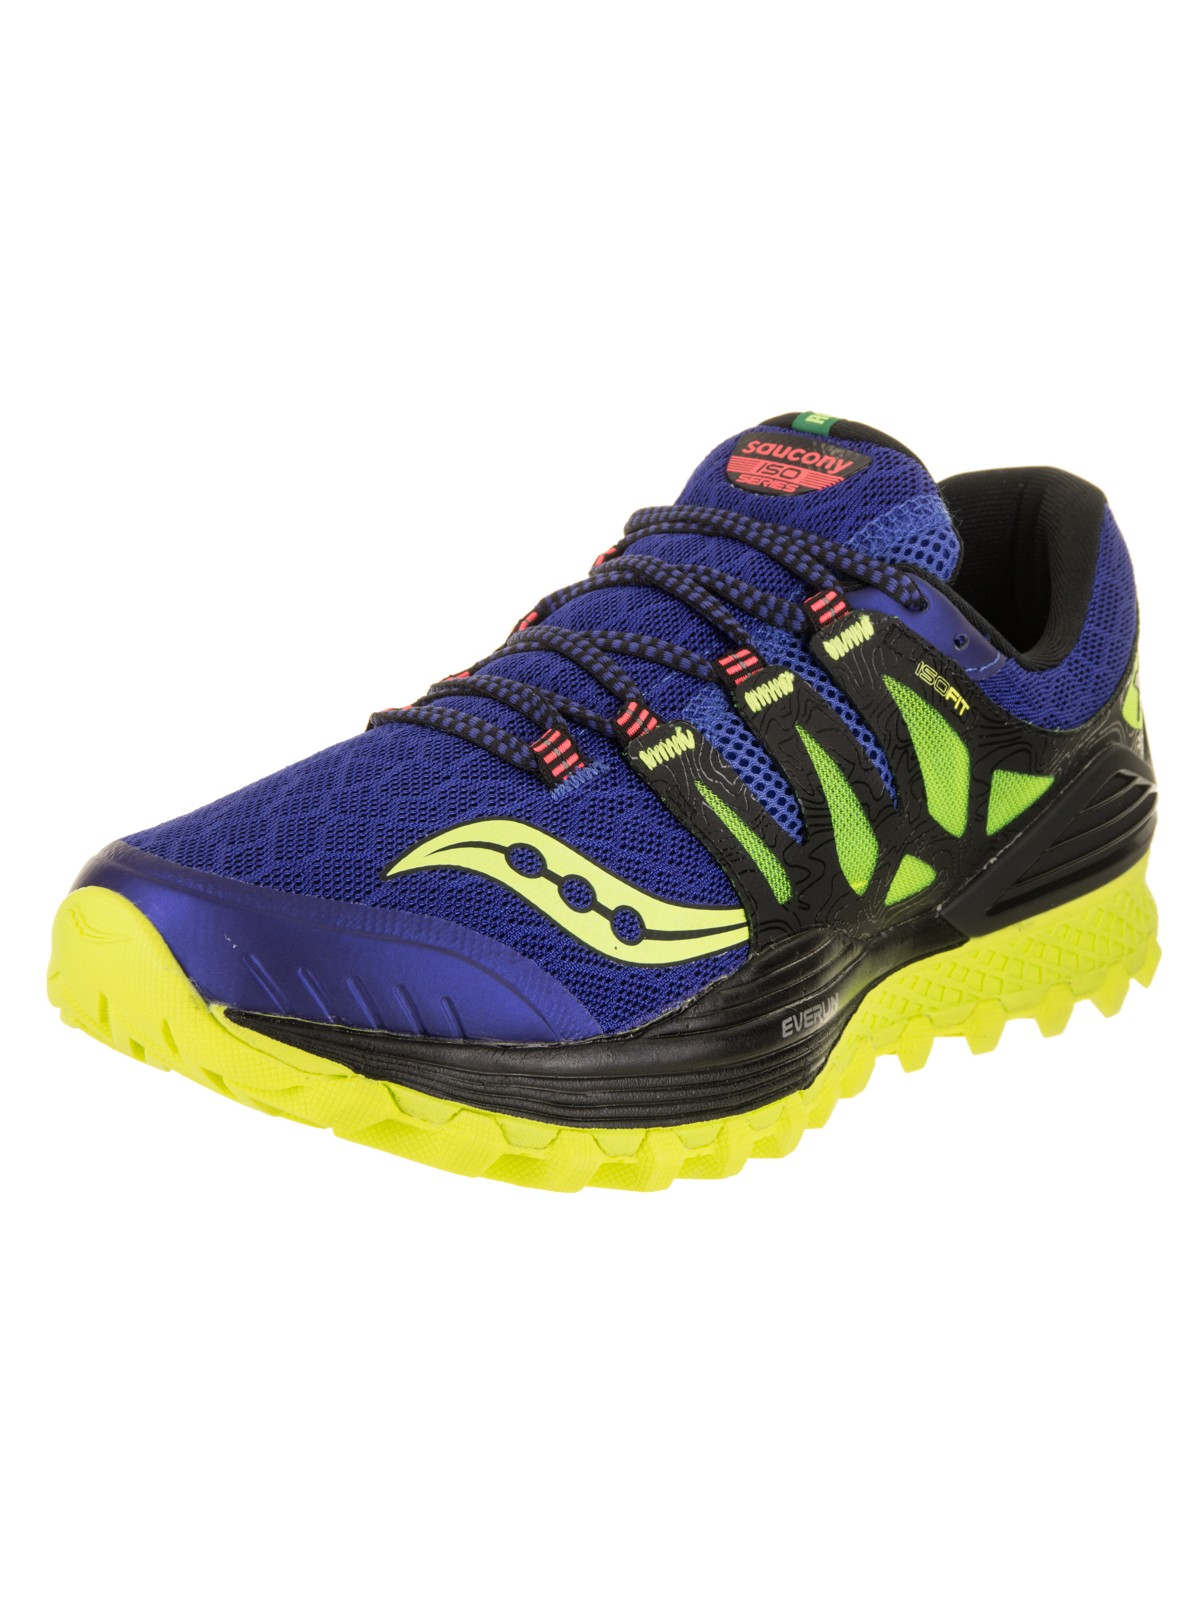 Saucony Men's Xodus Iso Trail Runner Shoe (12.5) by Saucony